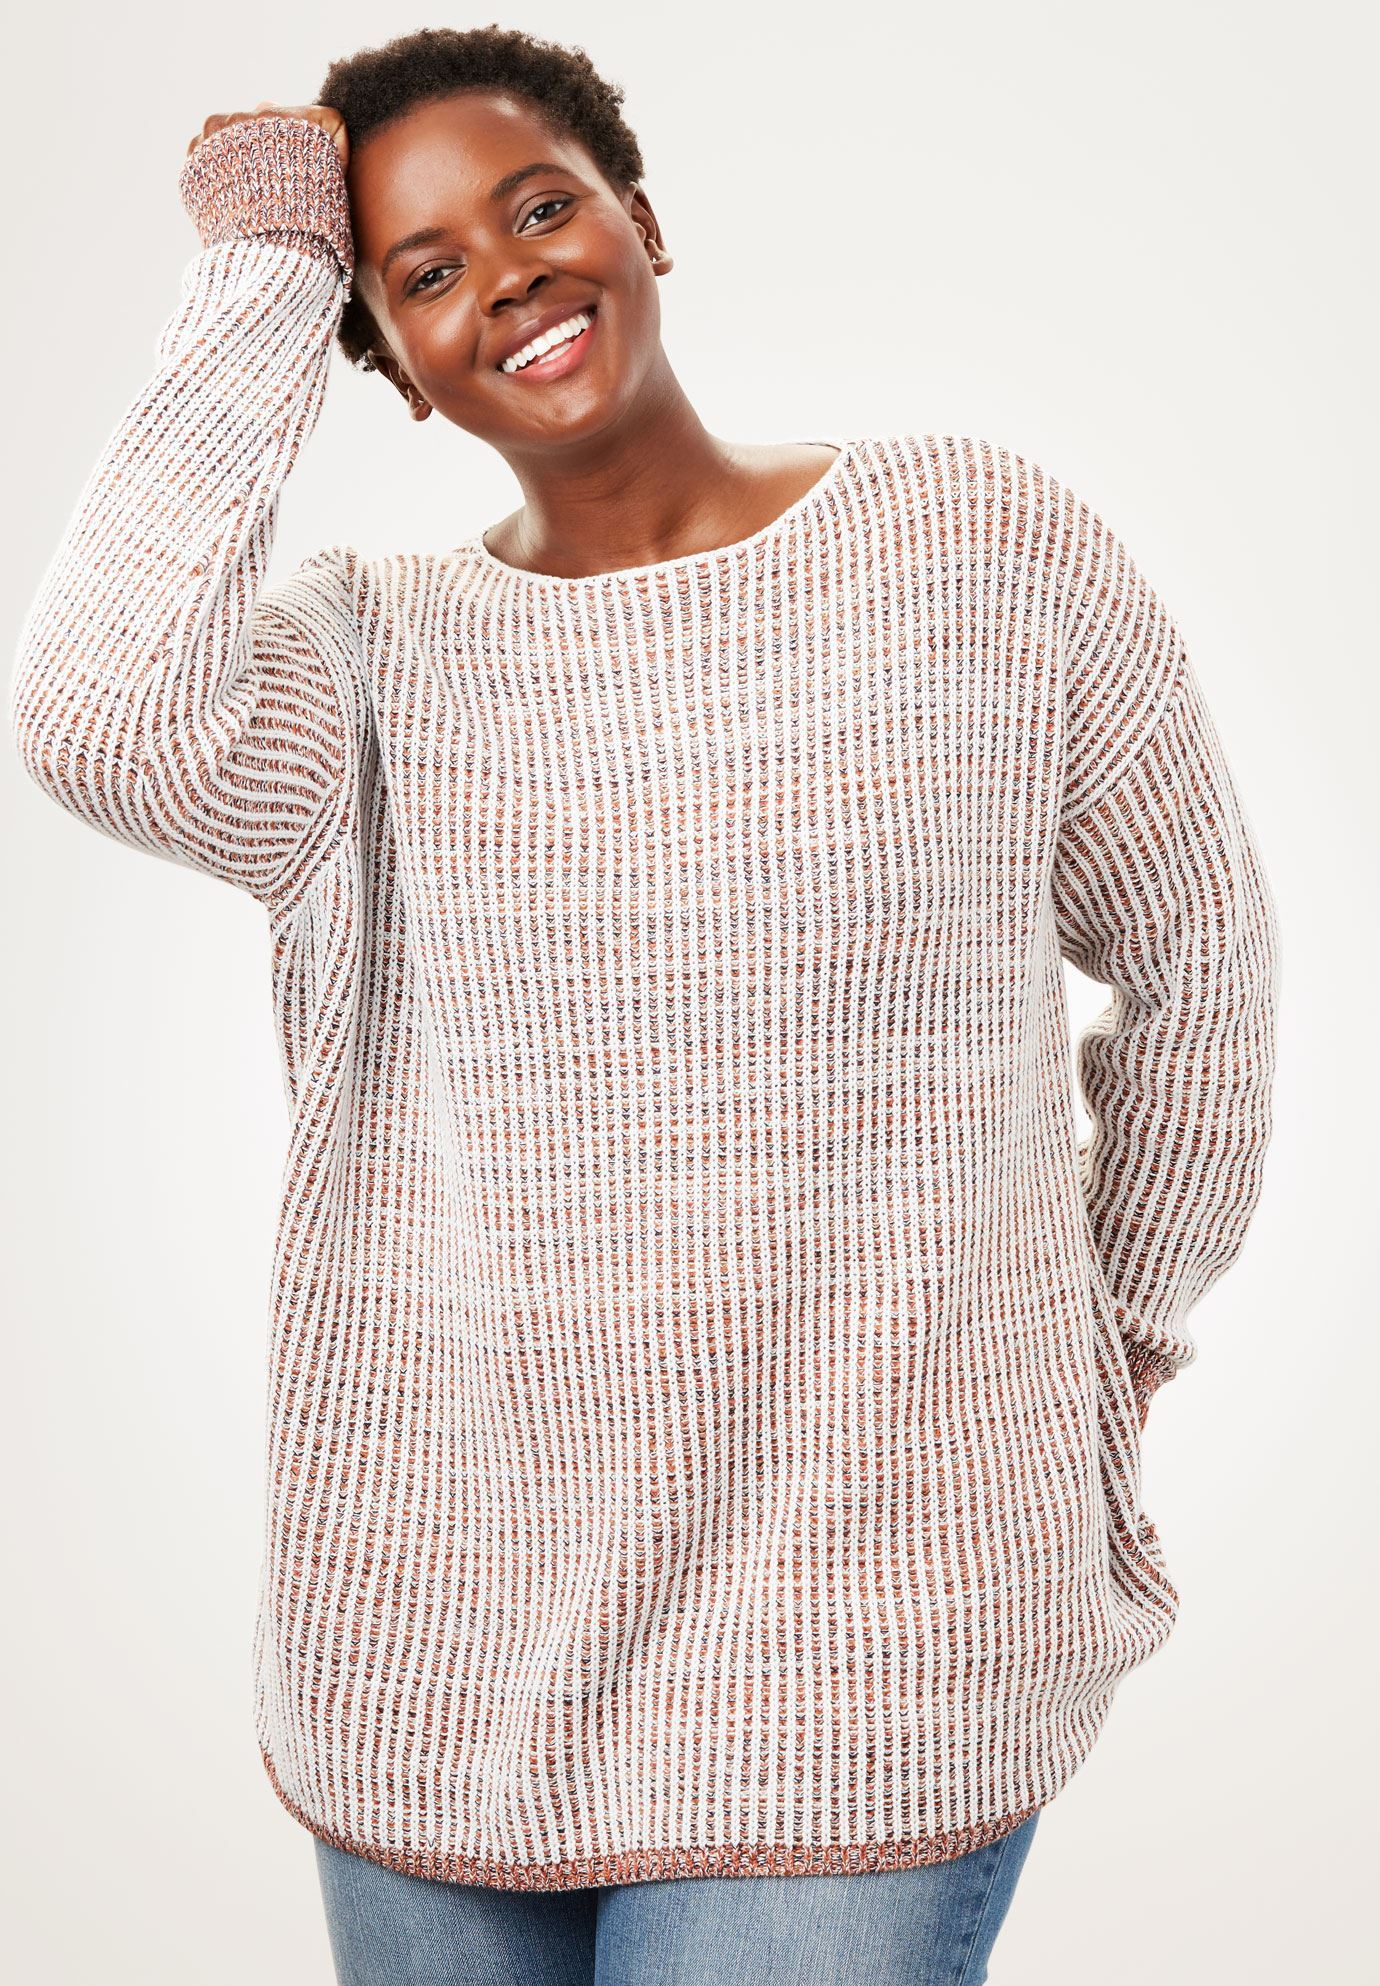 Multi Chunky Knit Sweater Plus Size Pullovers Full Beauty